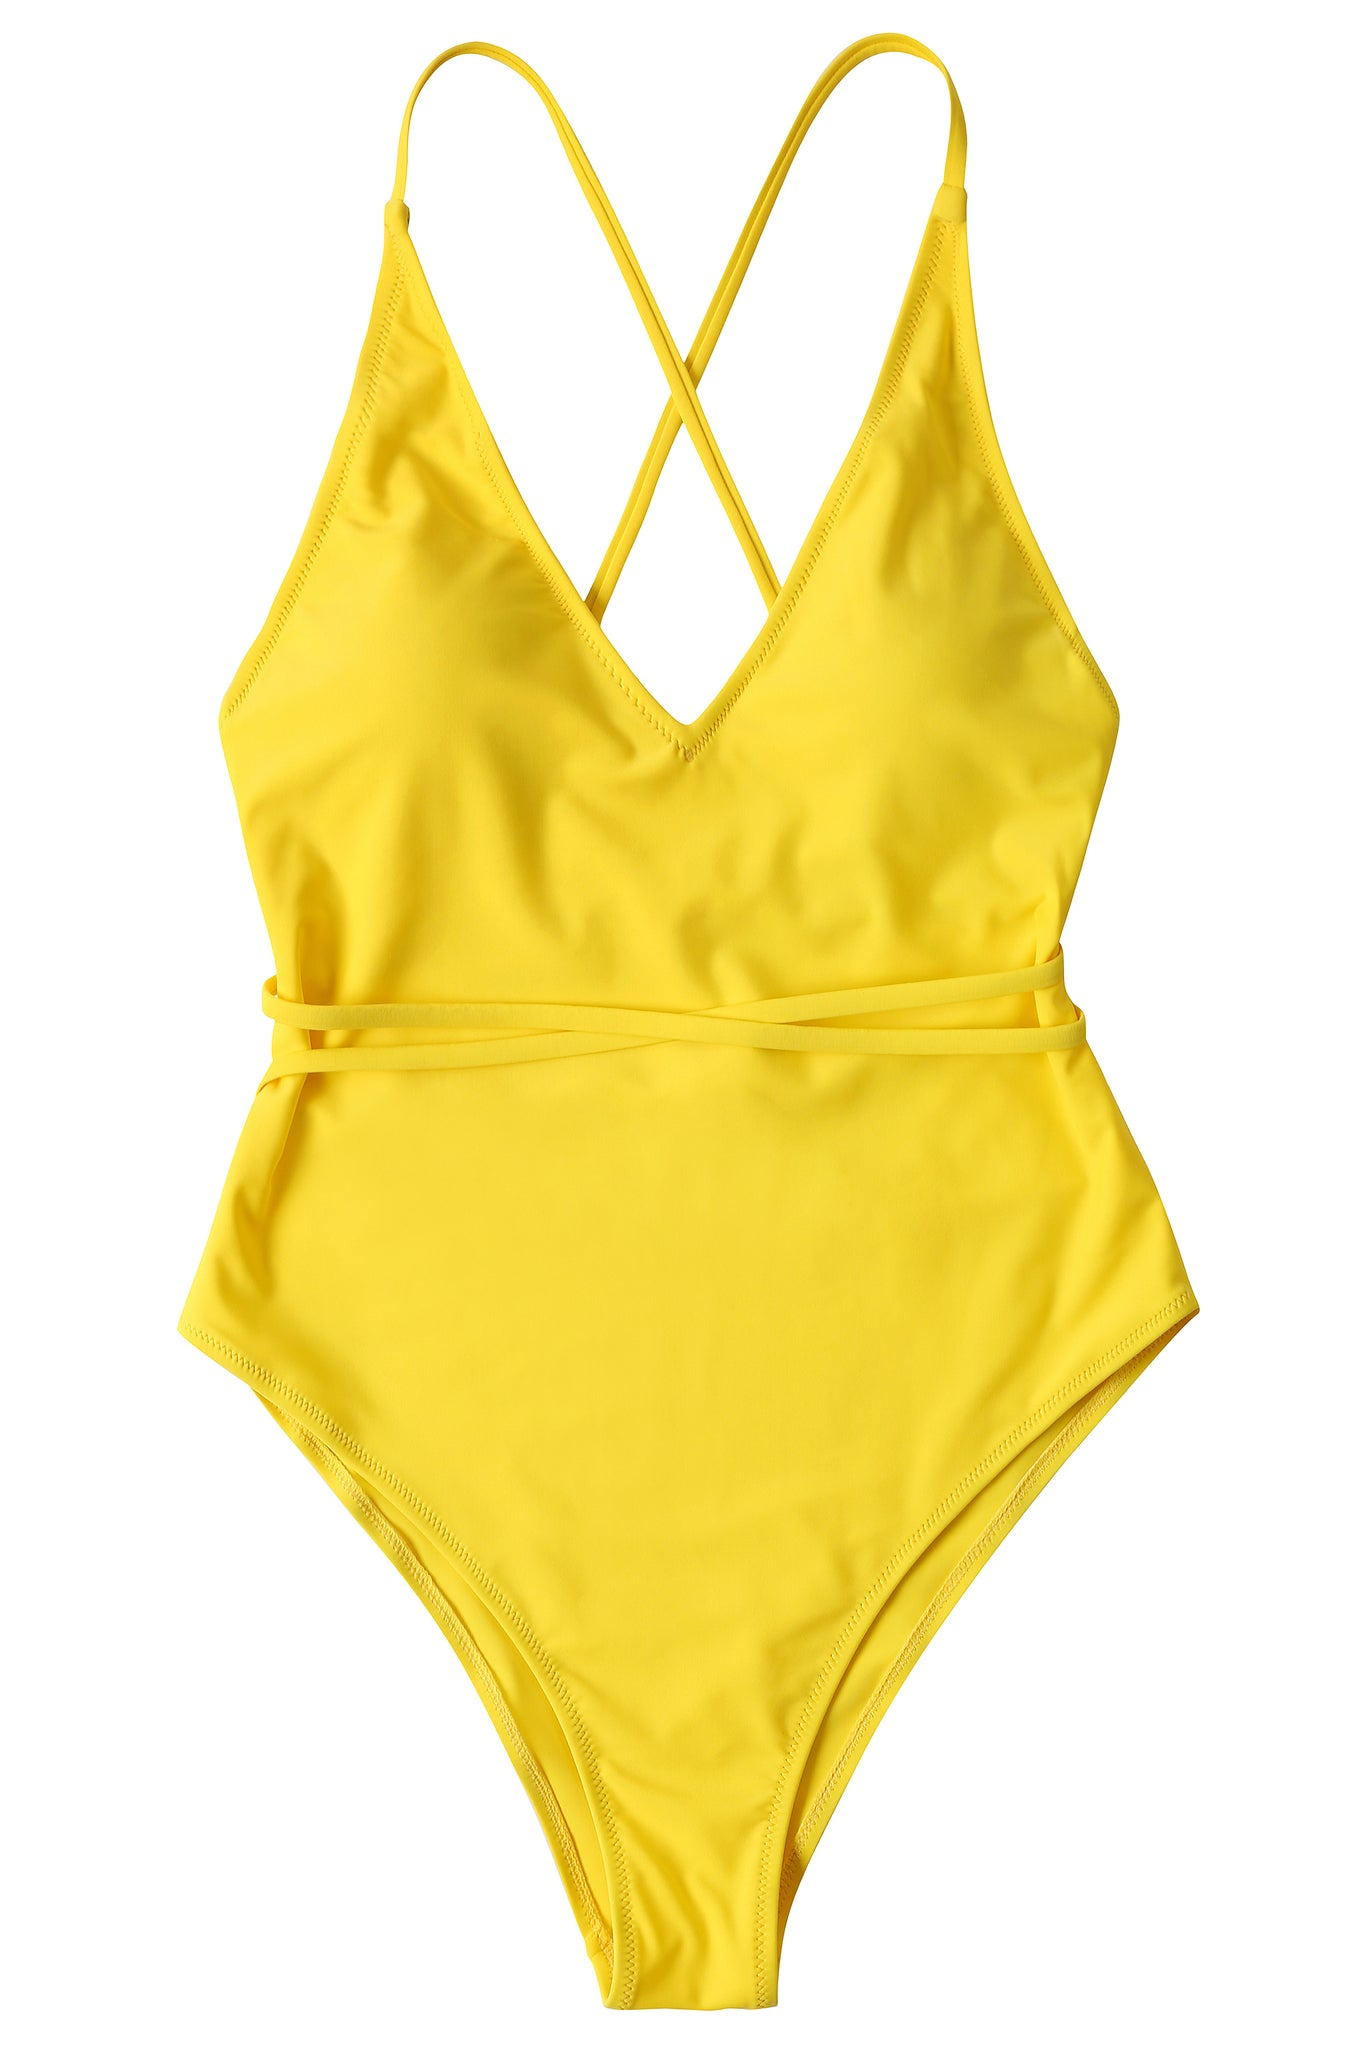 212139e3664 ... Load image into Gallery viewer, Monokini Swimsuits for Women Deep V  Spaghetti Straps Tie Back ...